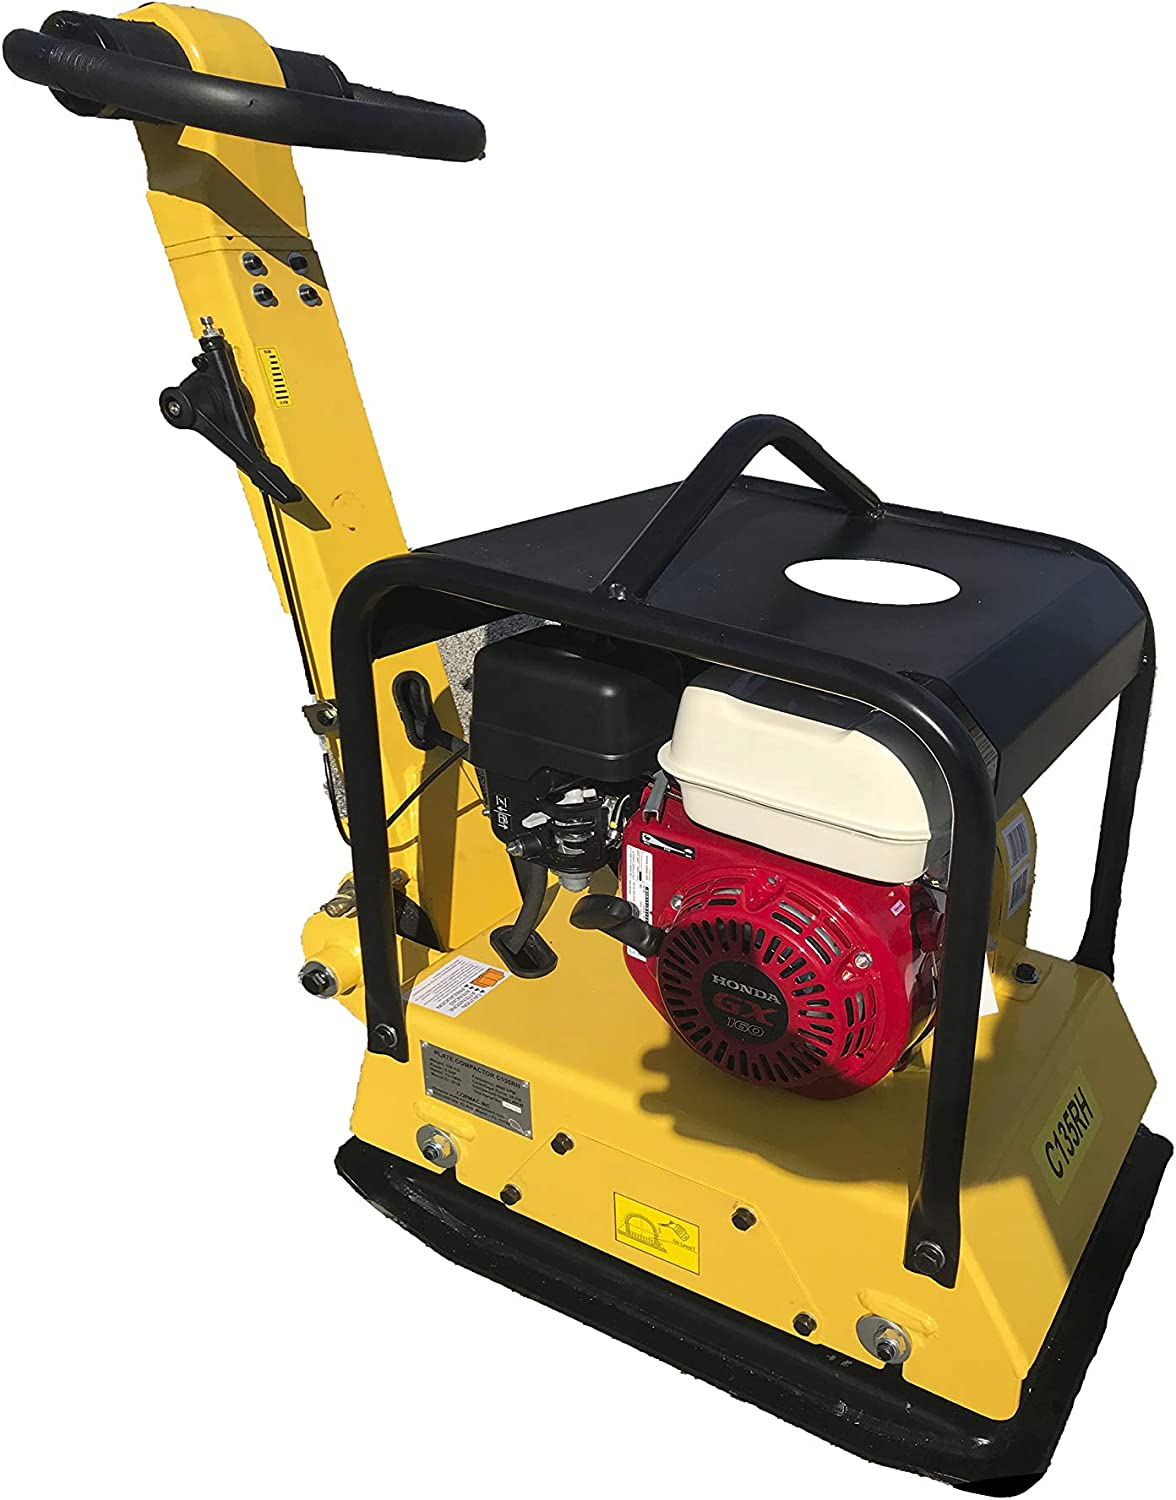 CORMAC C135RH Hydraulic Reversible plate compactor, gasoline engine GX160 @ 5.5 Hp, weight: 320 Lb